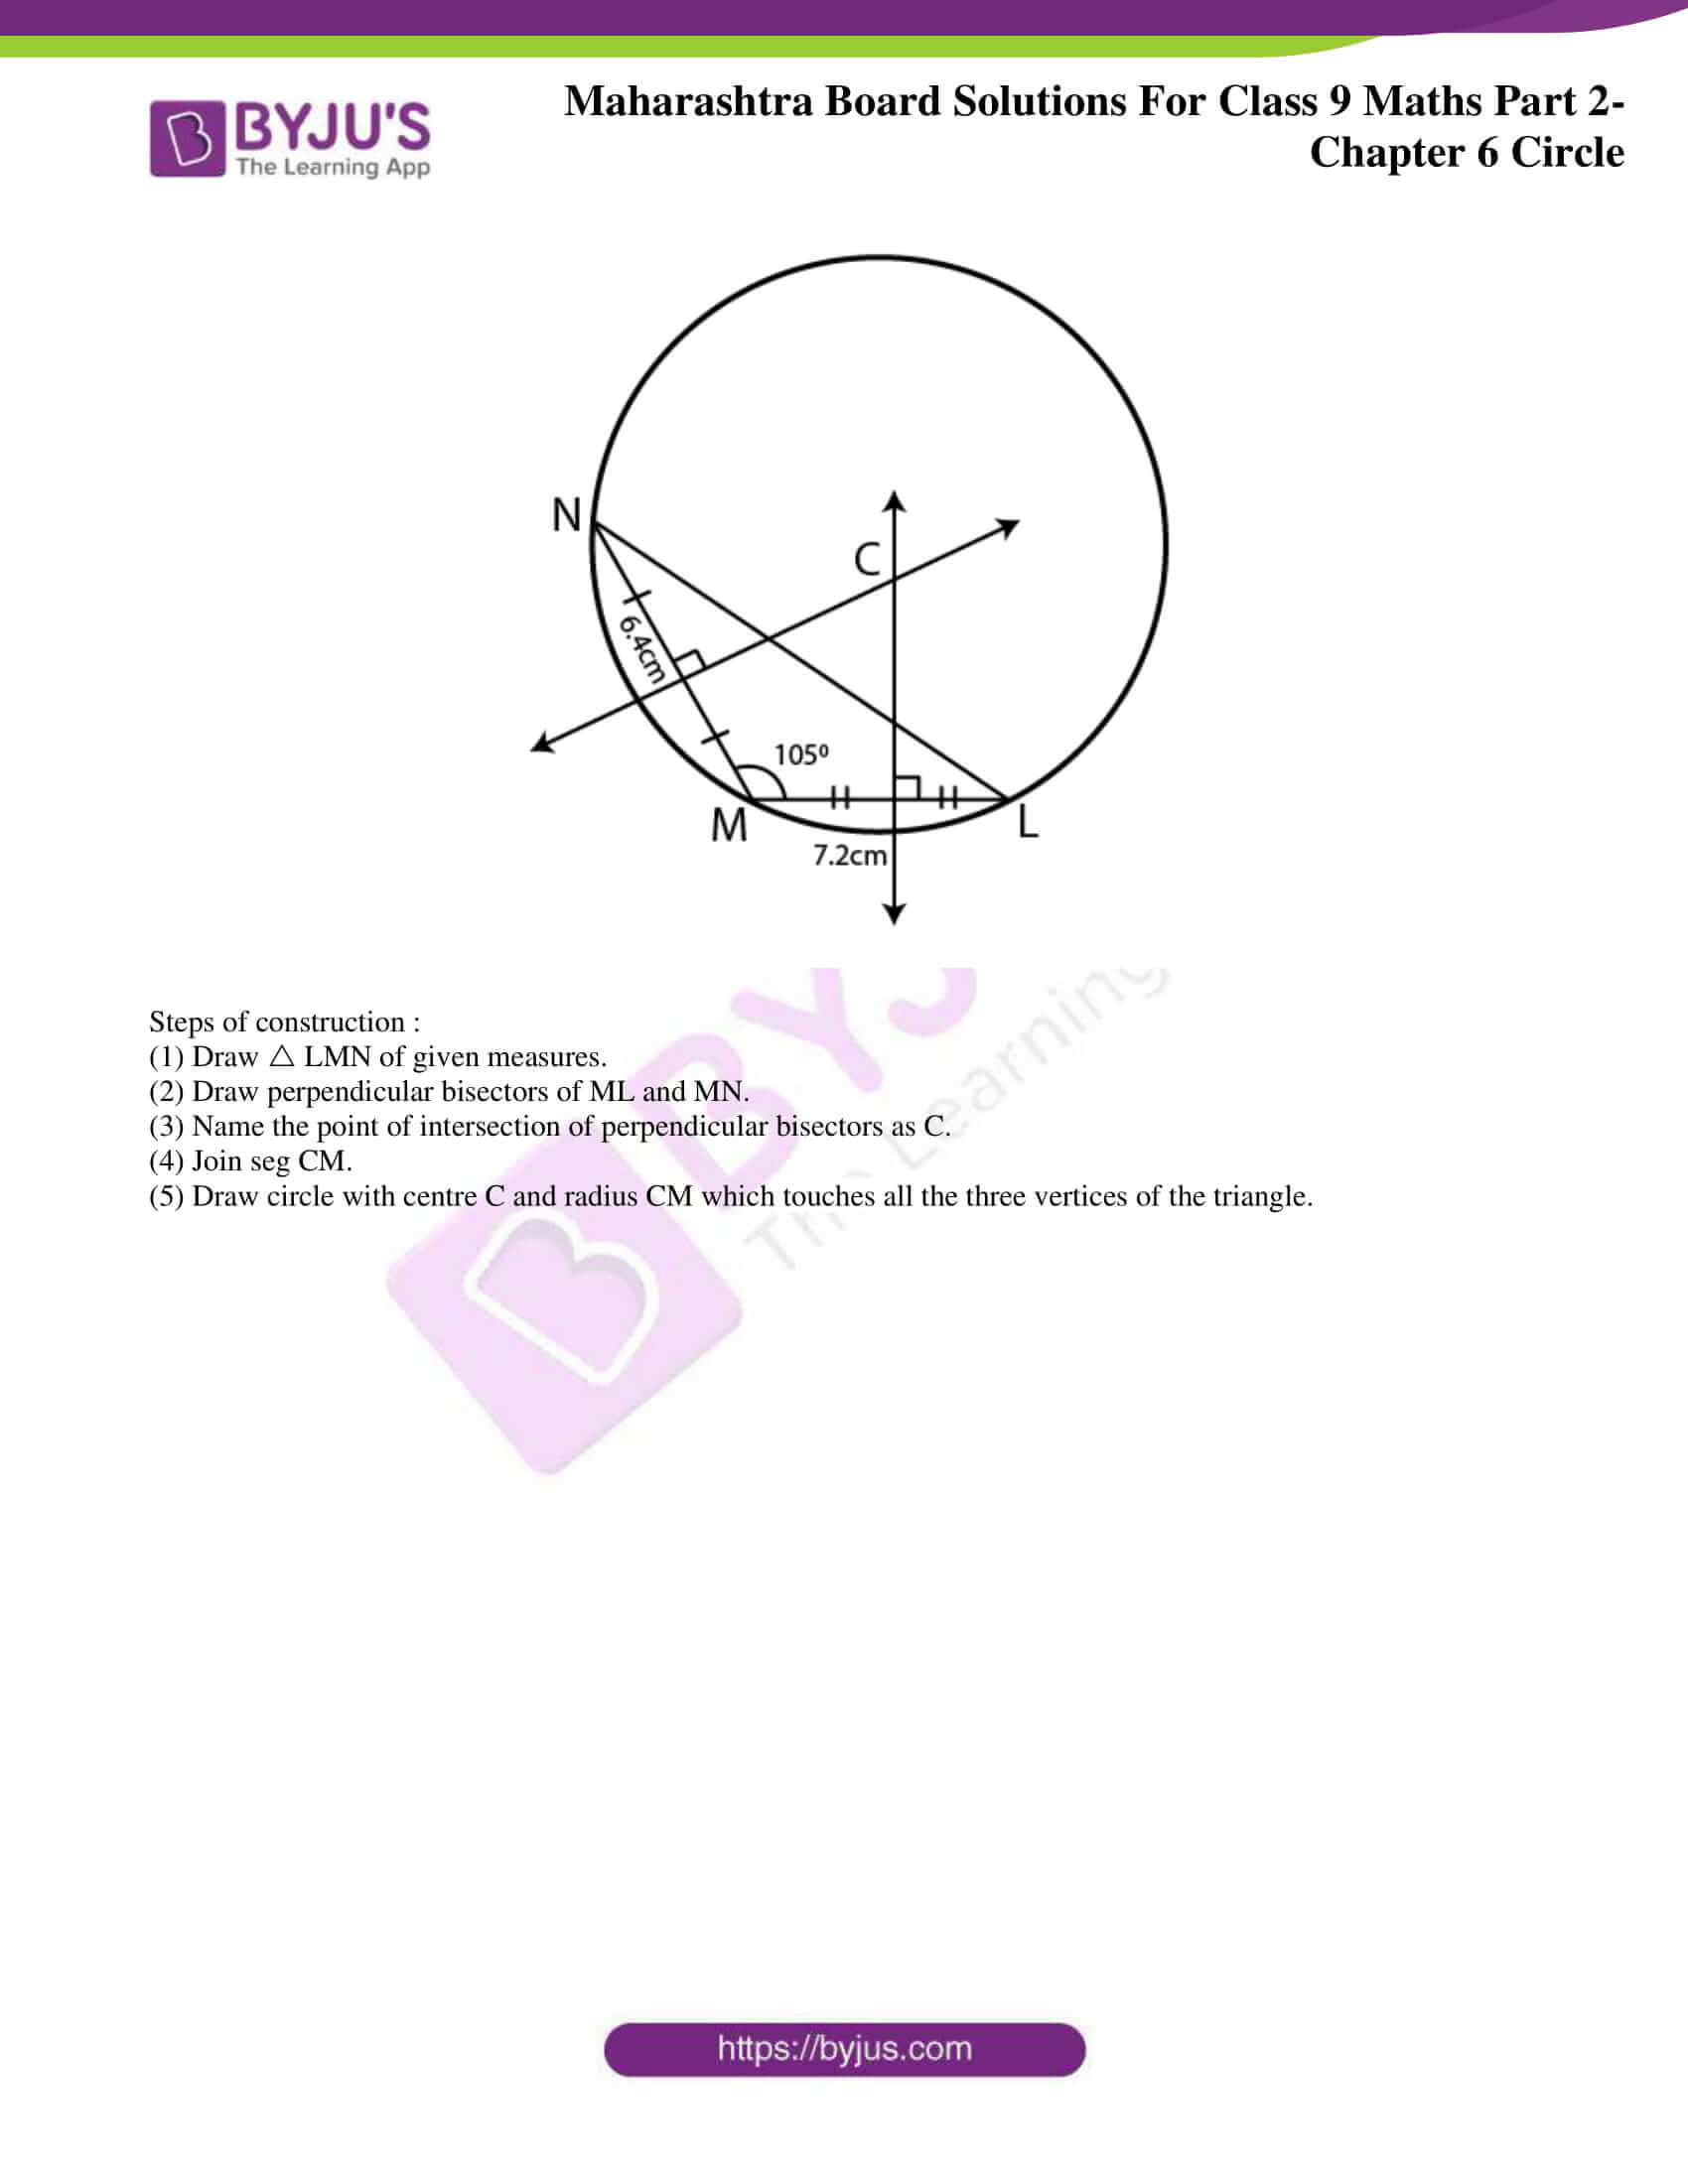 msbshse solutions for class 9 maths part 2 chapter 6 16